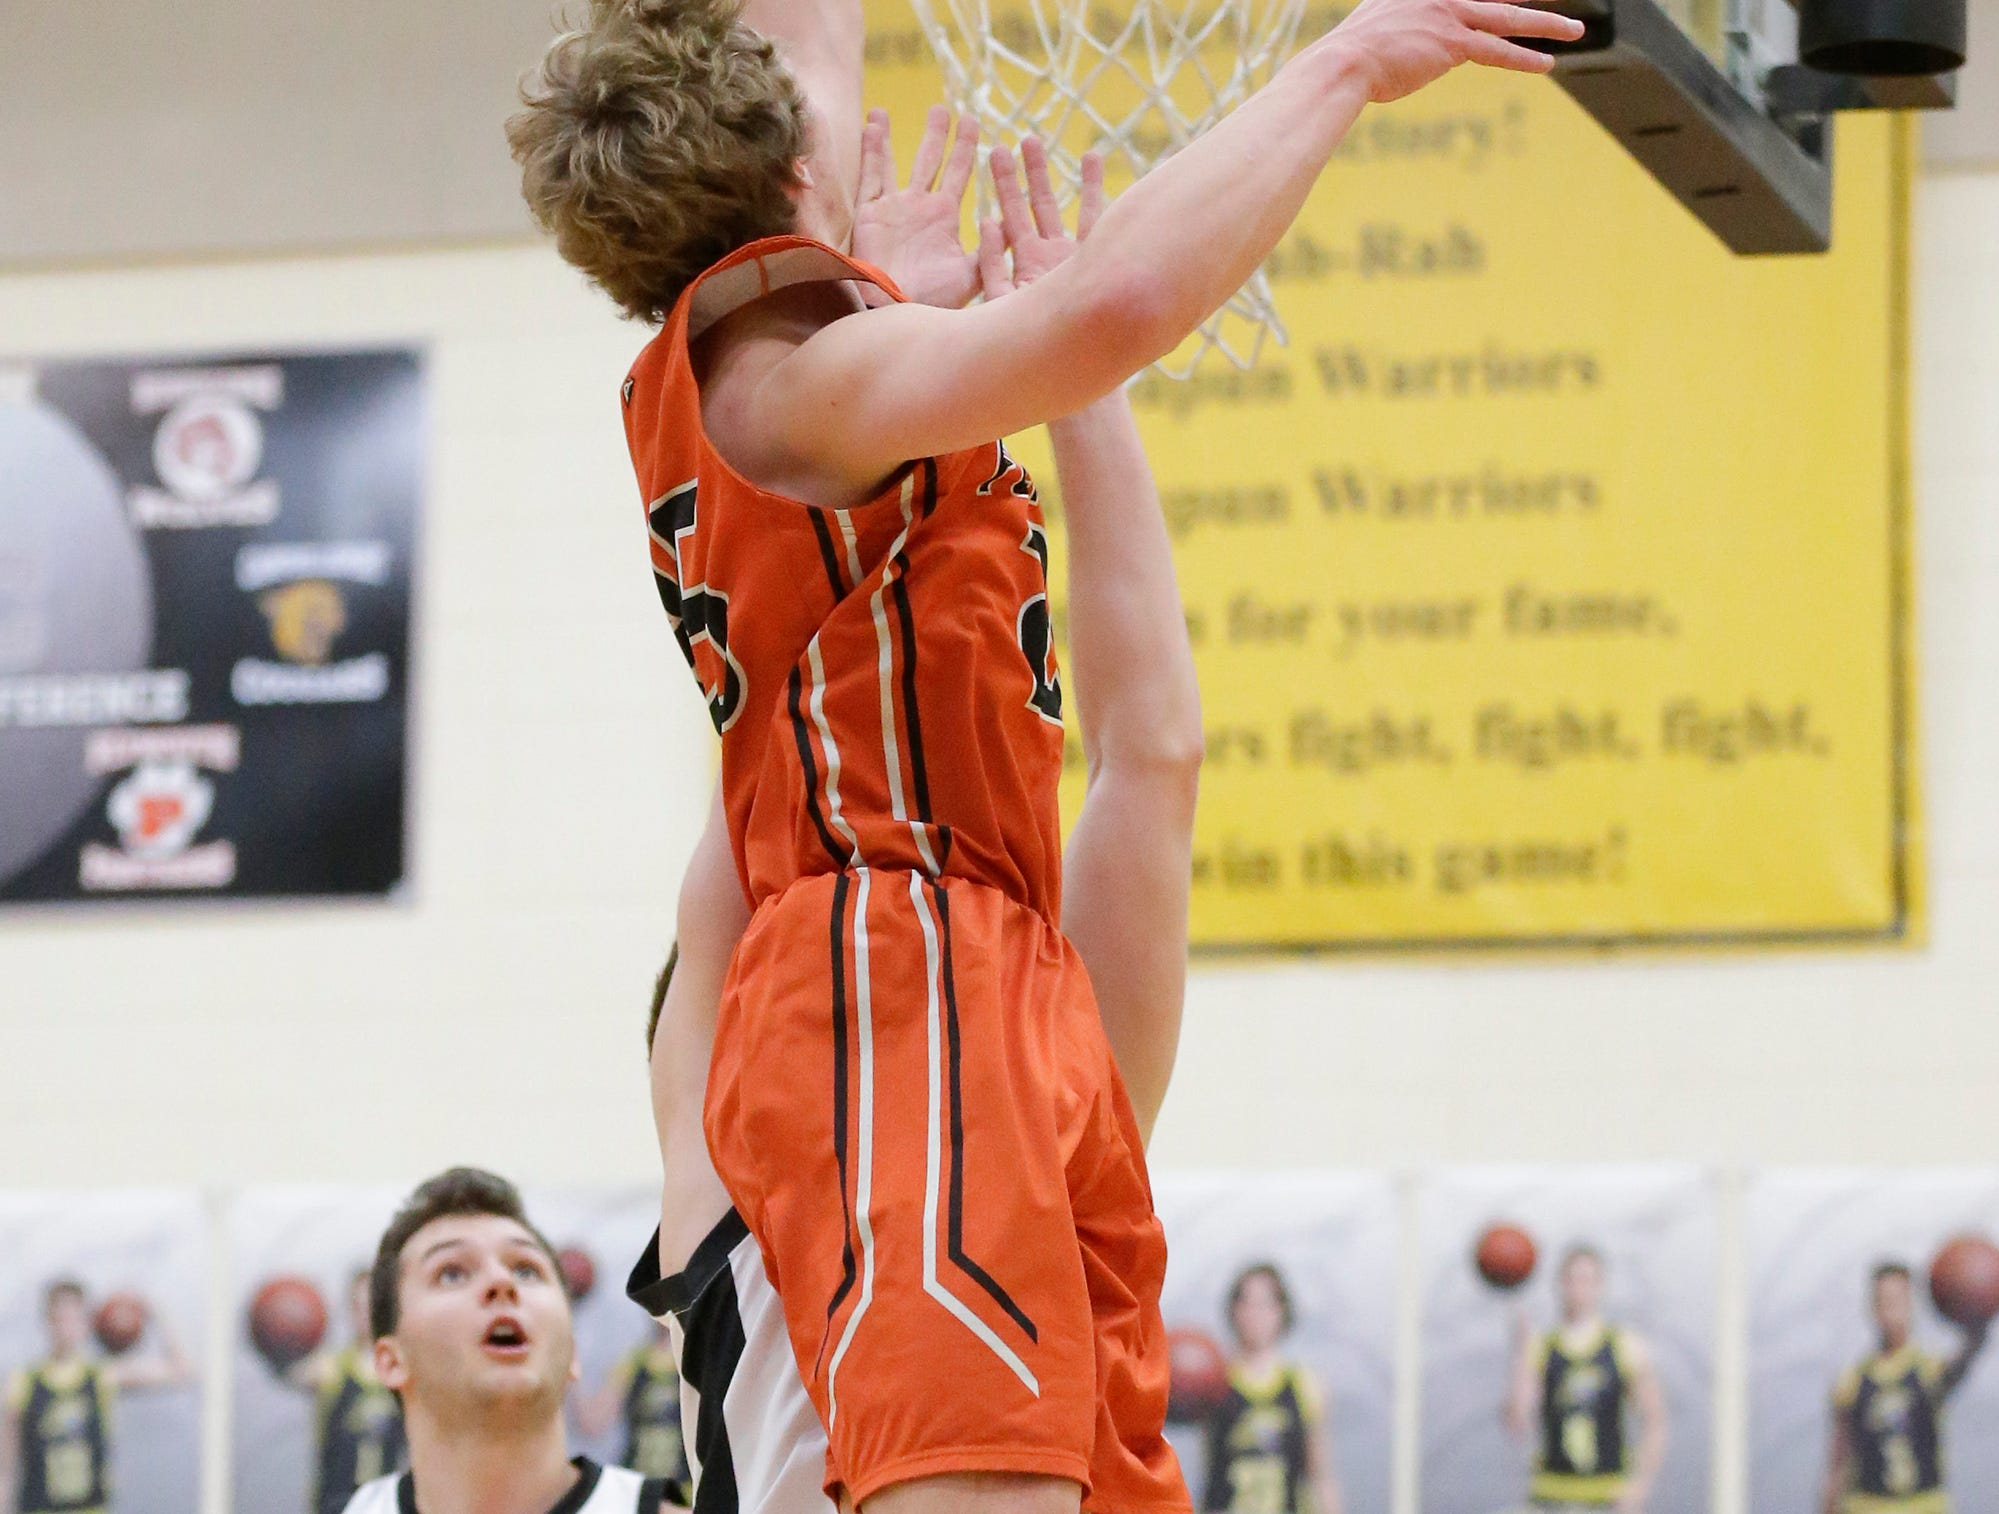 Plymouth High School boys basketball's Aiden Reilly goes up for a shot against Waupun High School during their game Friday, February 15, 2019 in Waupun. Doug Raflik/USA TODAY NETWORK-Wisconsin